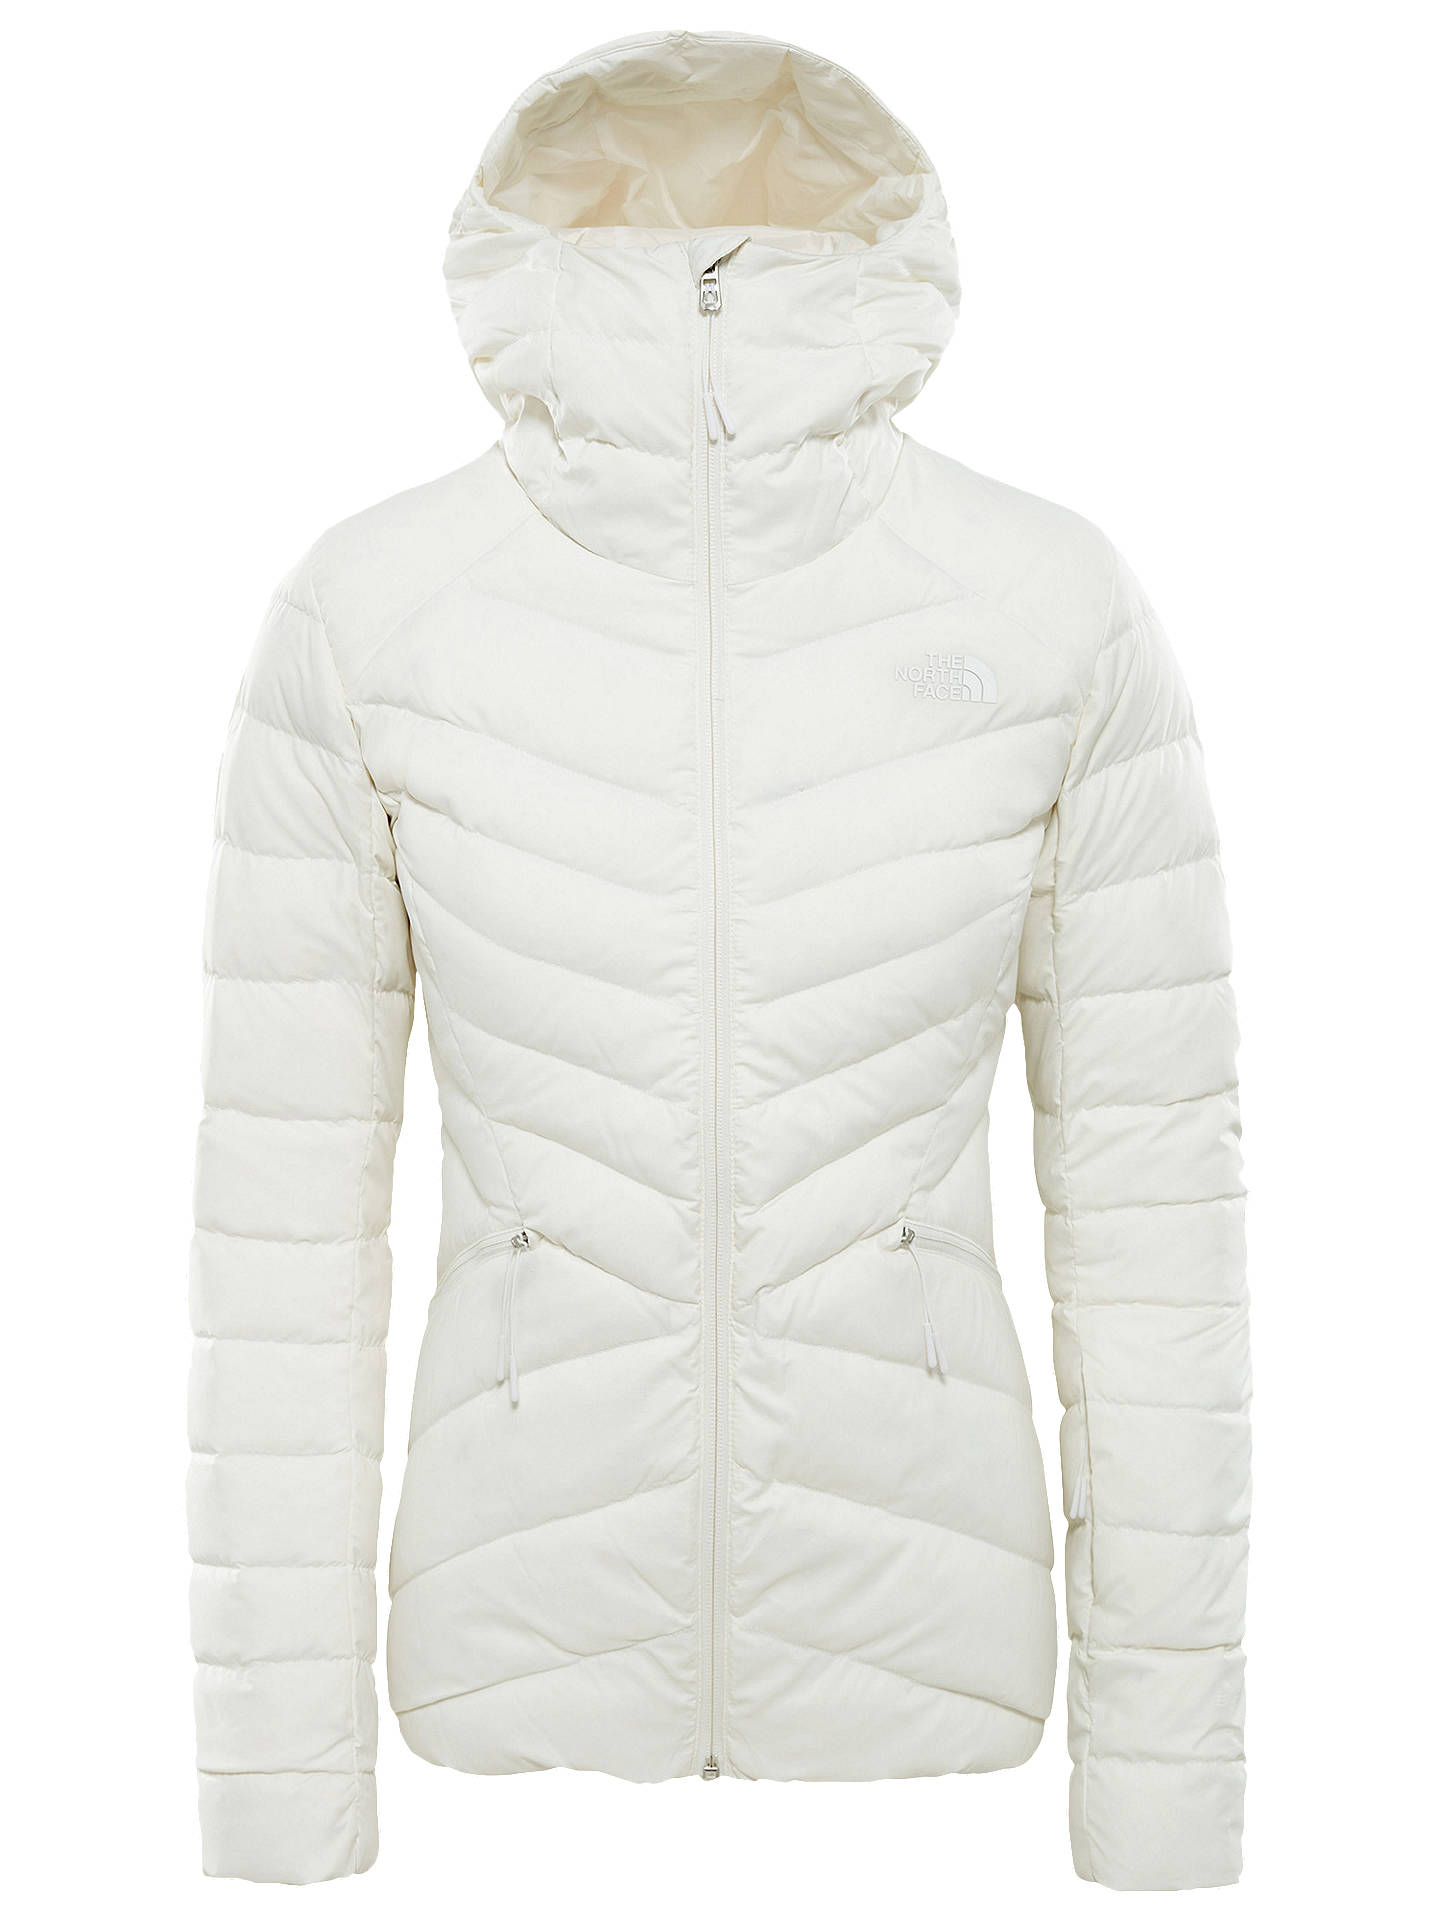 7198c08251402 Buy The North Face Women's Moonlight Down Waterproof Ski Jacket, White, XL  Online at ...